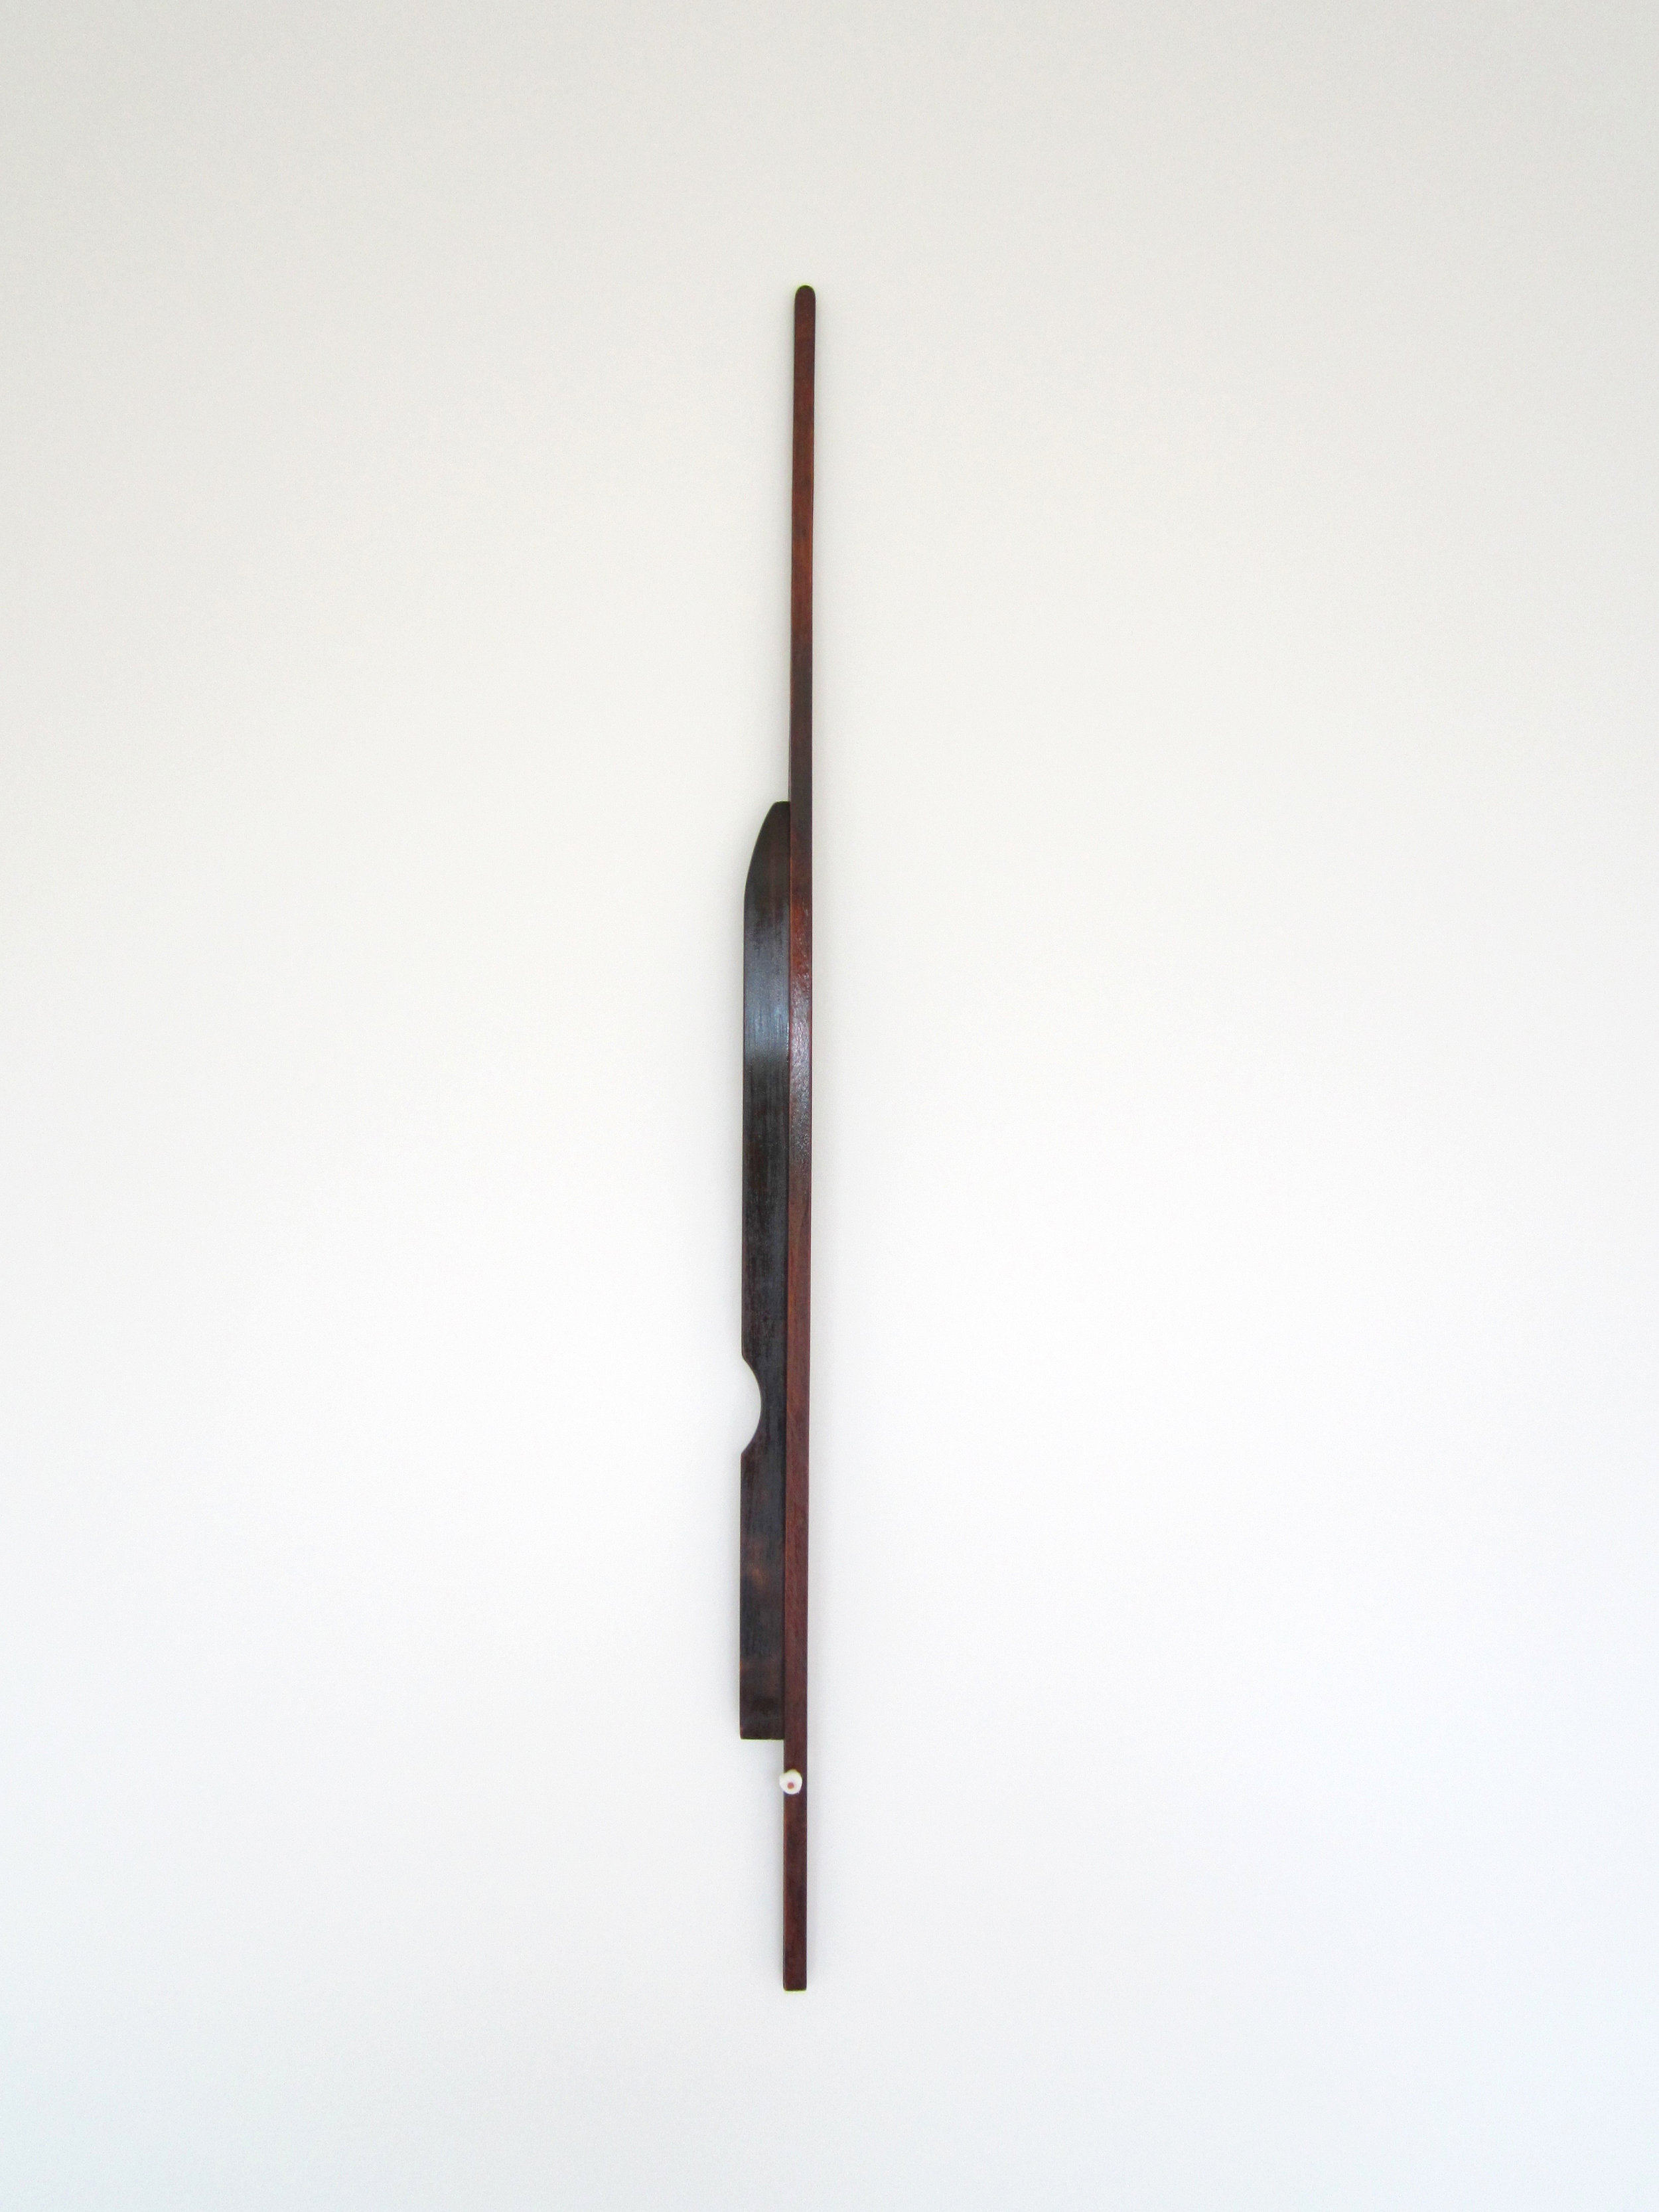 Shellac and dye on Walnut, Pine and hand moldable plastic, 44 x 1.75 x 2.5 inches